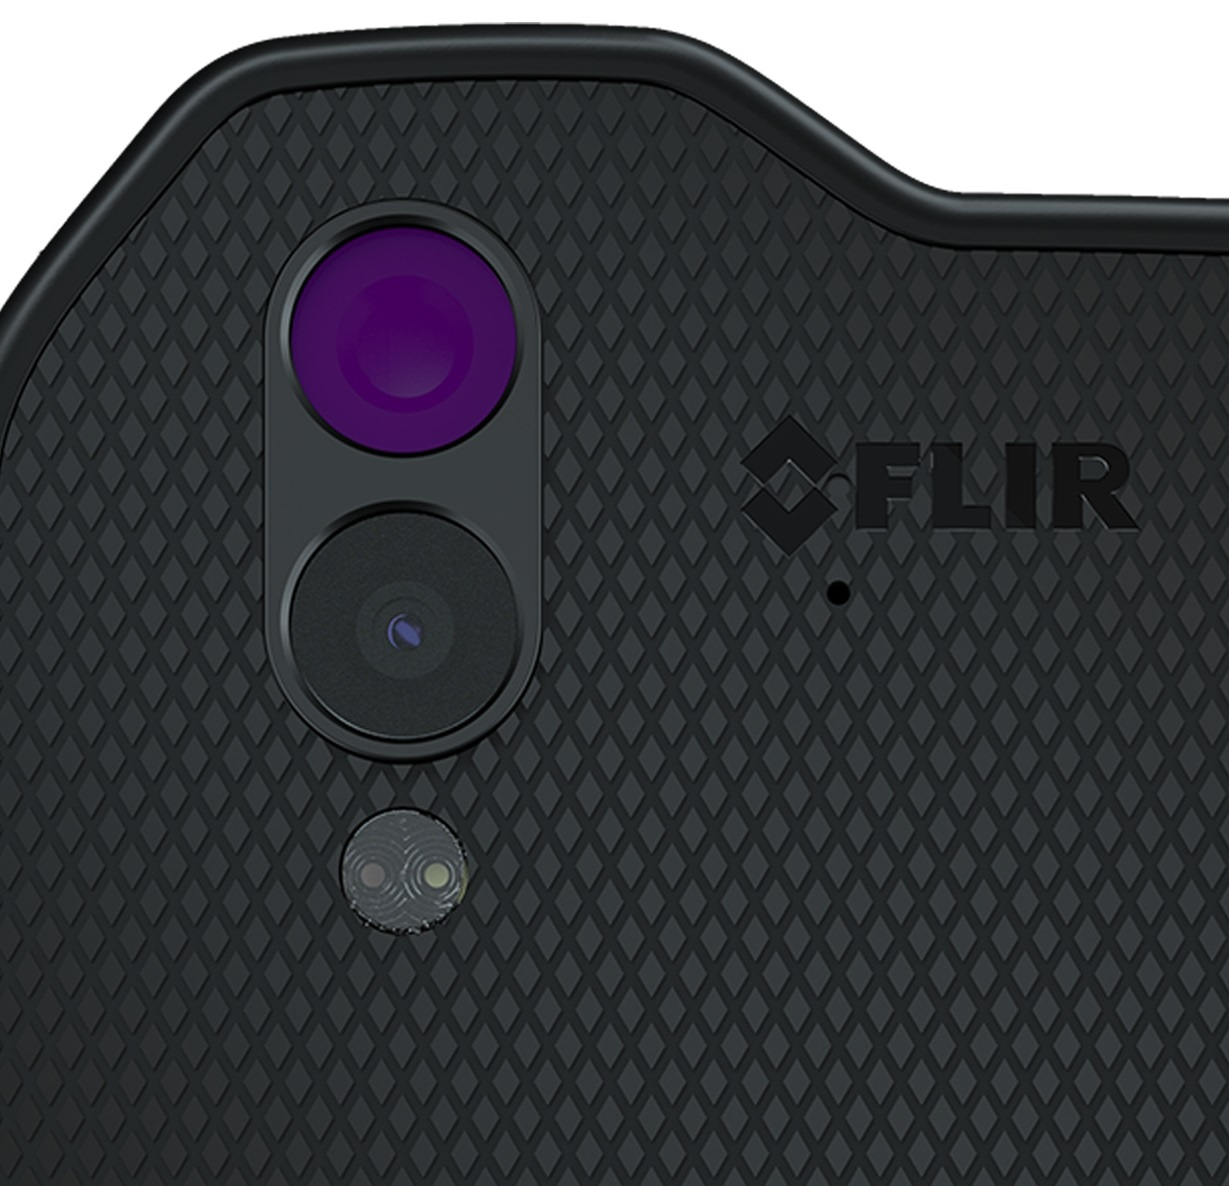 New Cat S61 Android smartphone with Thermal by FLIR